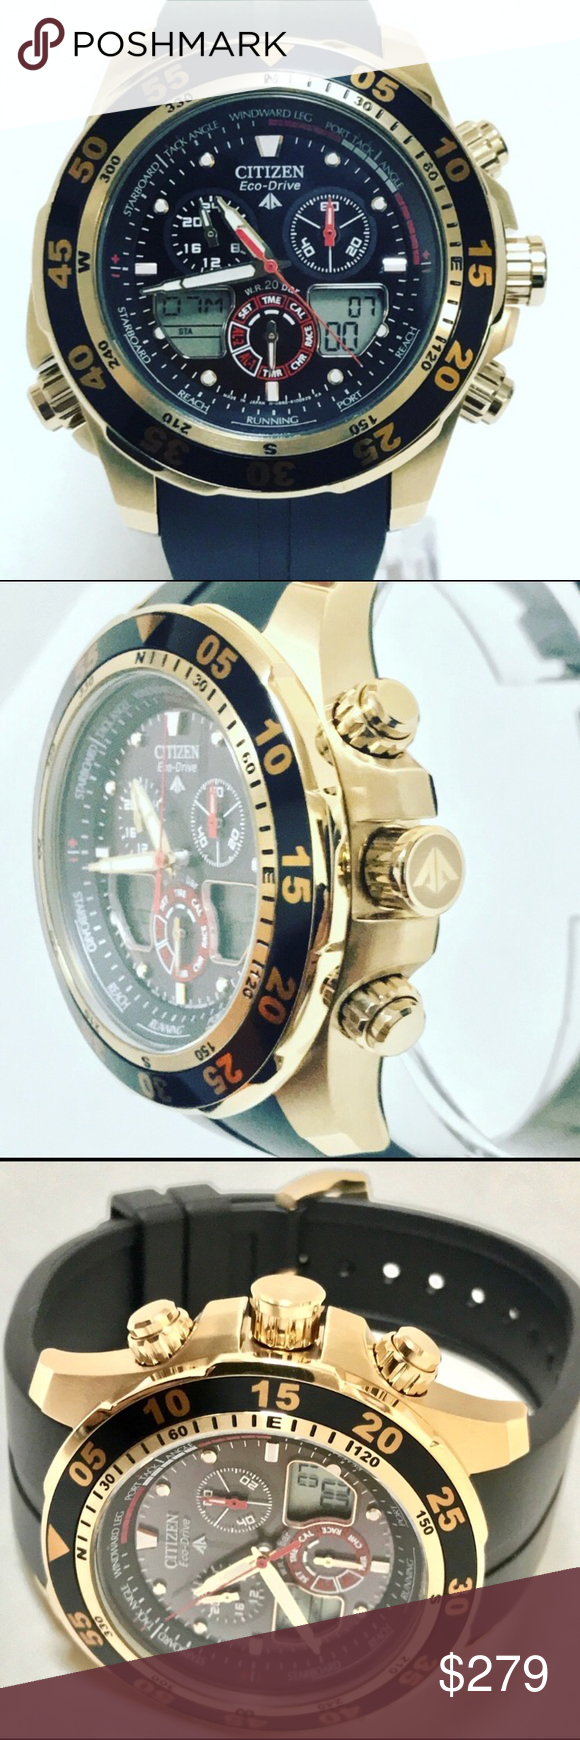 Citizen Men's watch Rotating Rose Gold Plated Bezel with